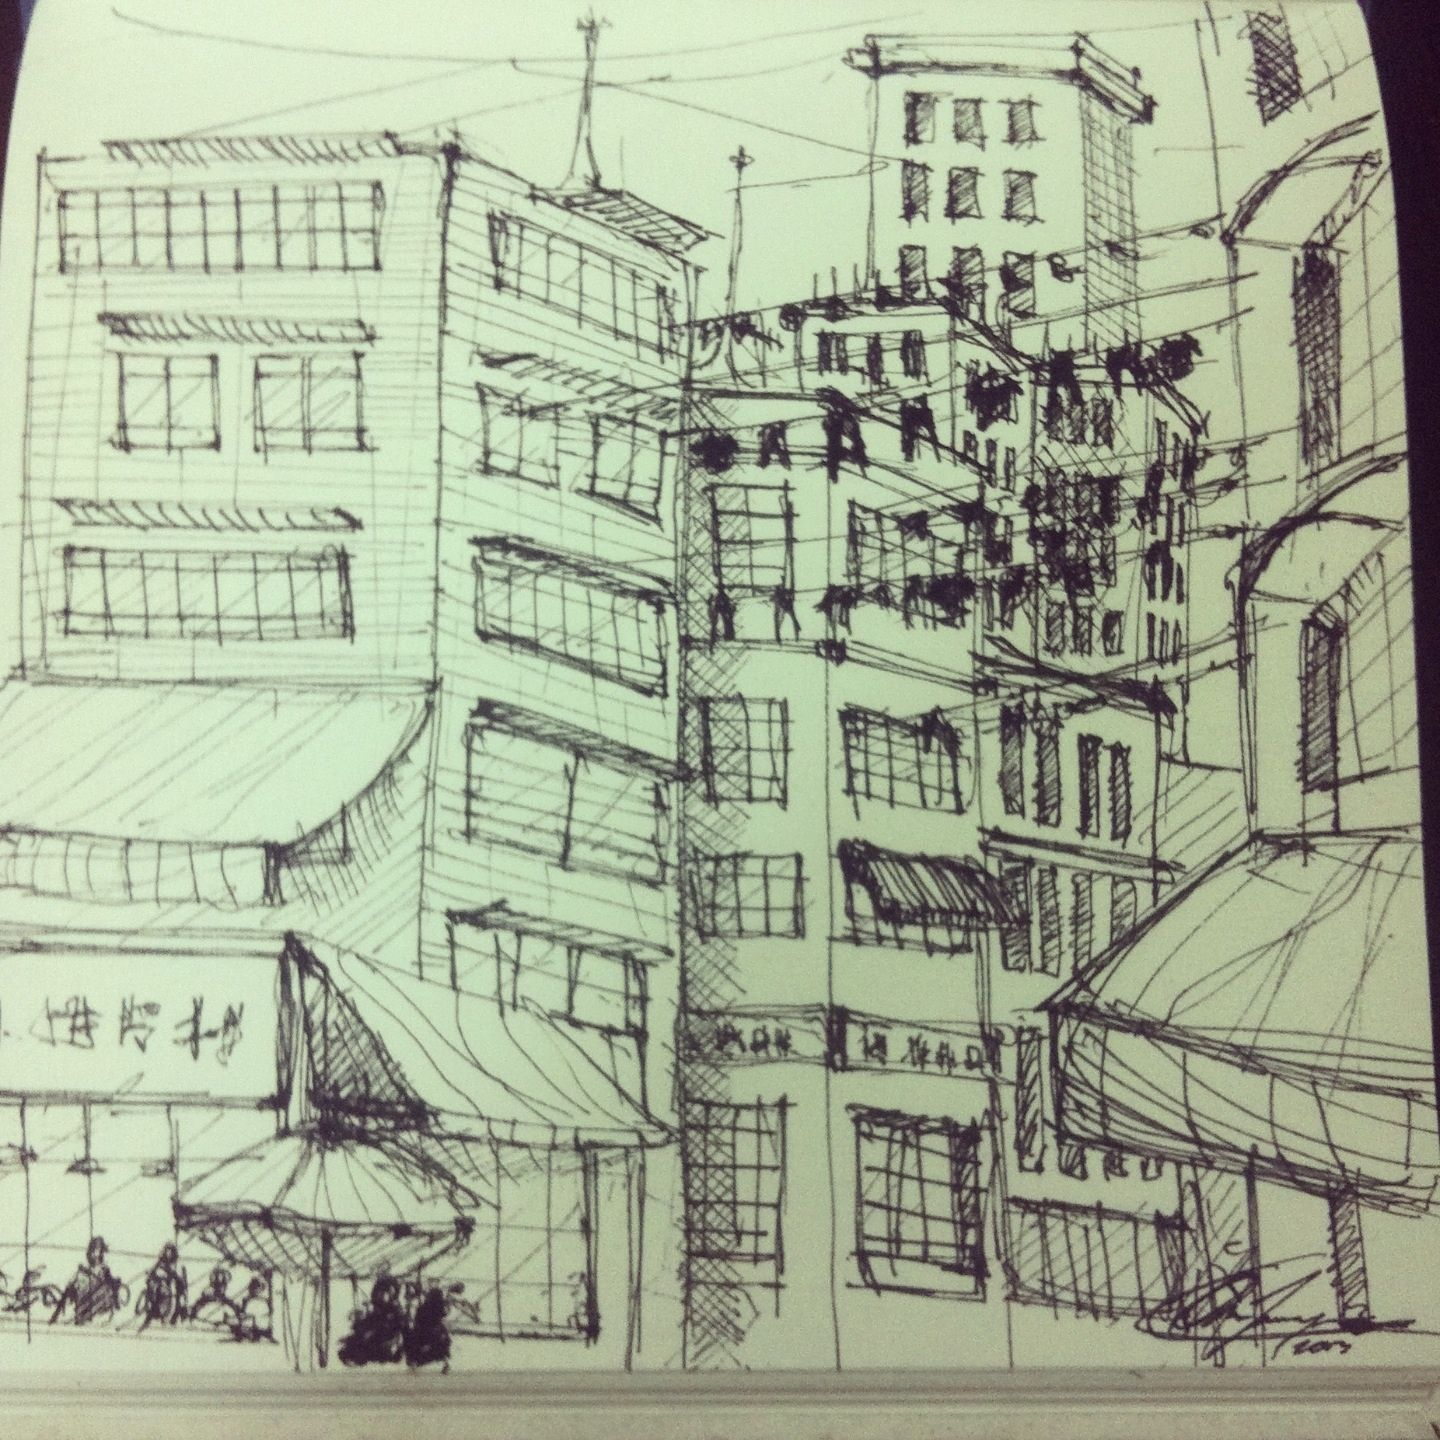 Sketch Book Drawing City Place Shadows Sky Architecture Mini People Perspective Art